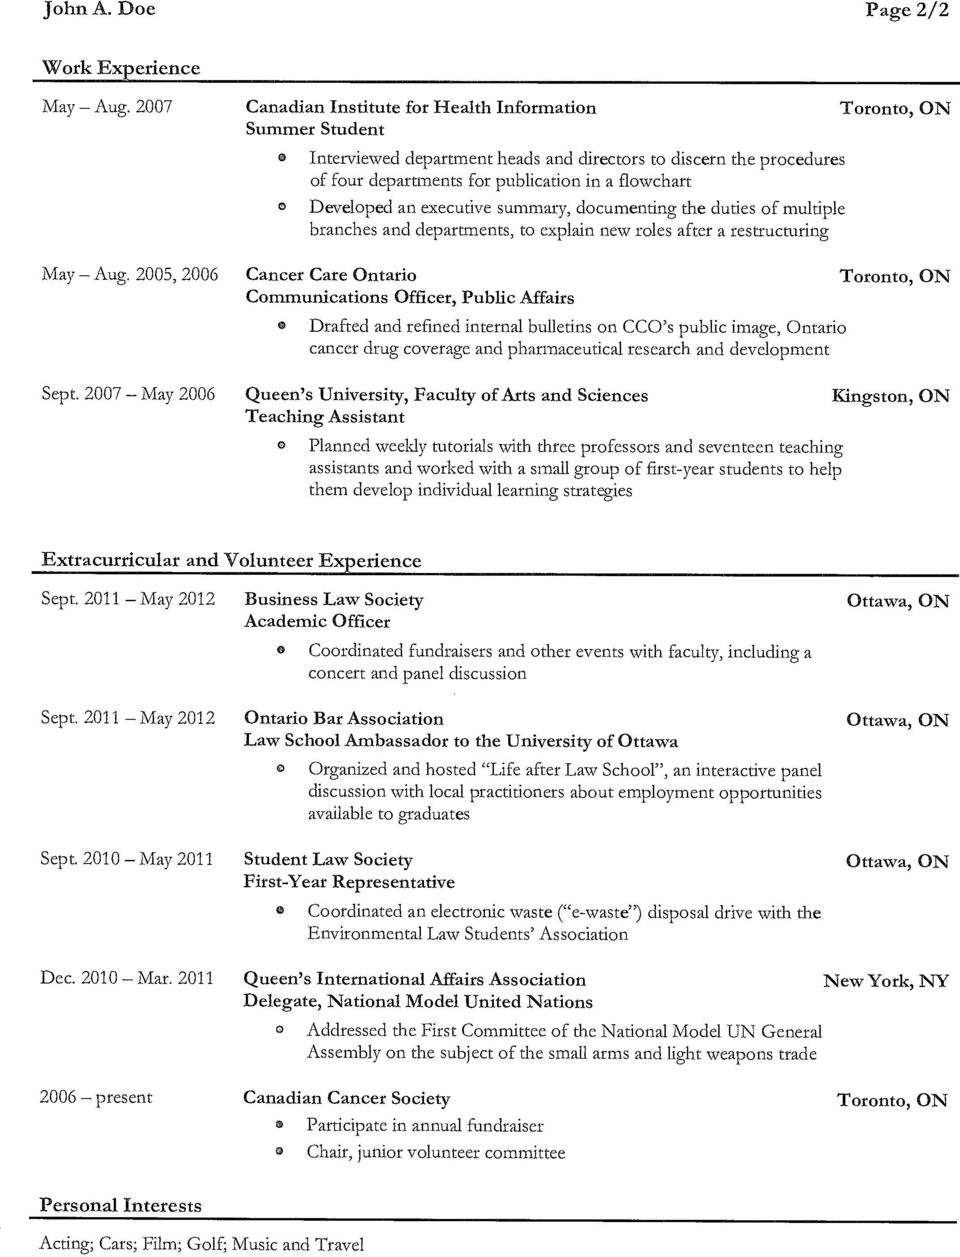 executive summary, dcumenting the duties f multiple branches and departments, t explain new rles after a restructuring May Aug. 2005, 2006 Sept.